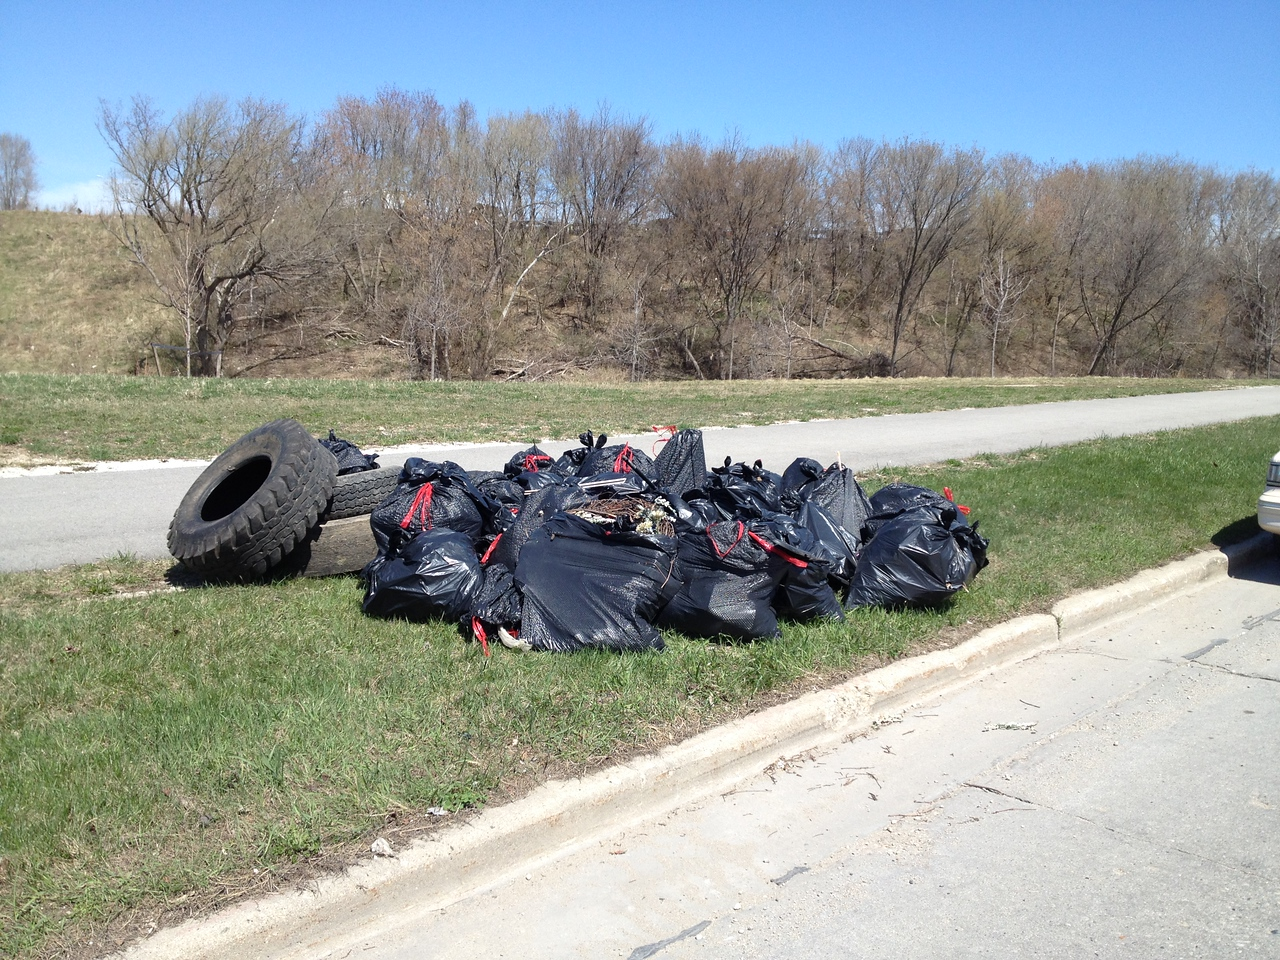 Just one of several piles of debris and trash that was removed from the Kinnickinnic River on Saturday, April 18th.